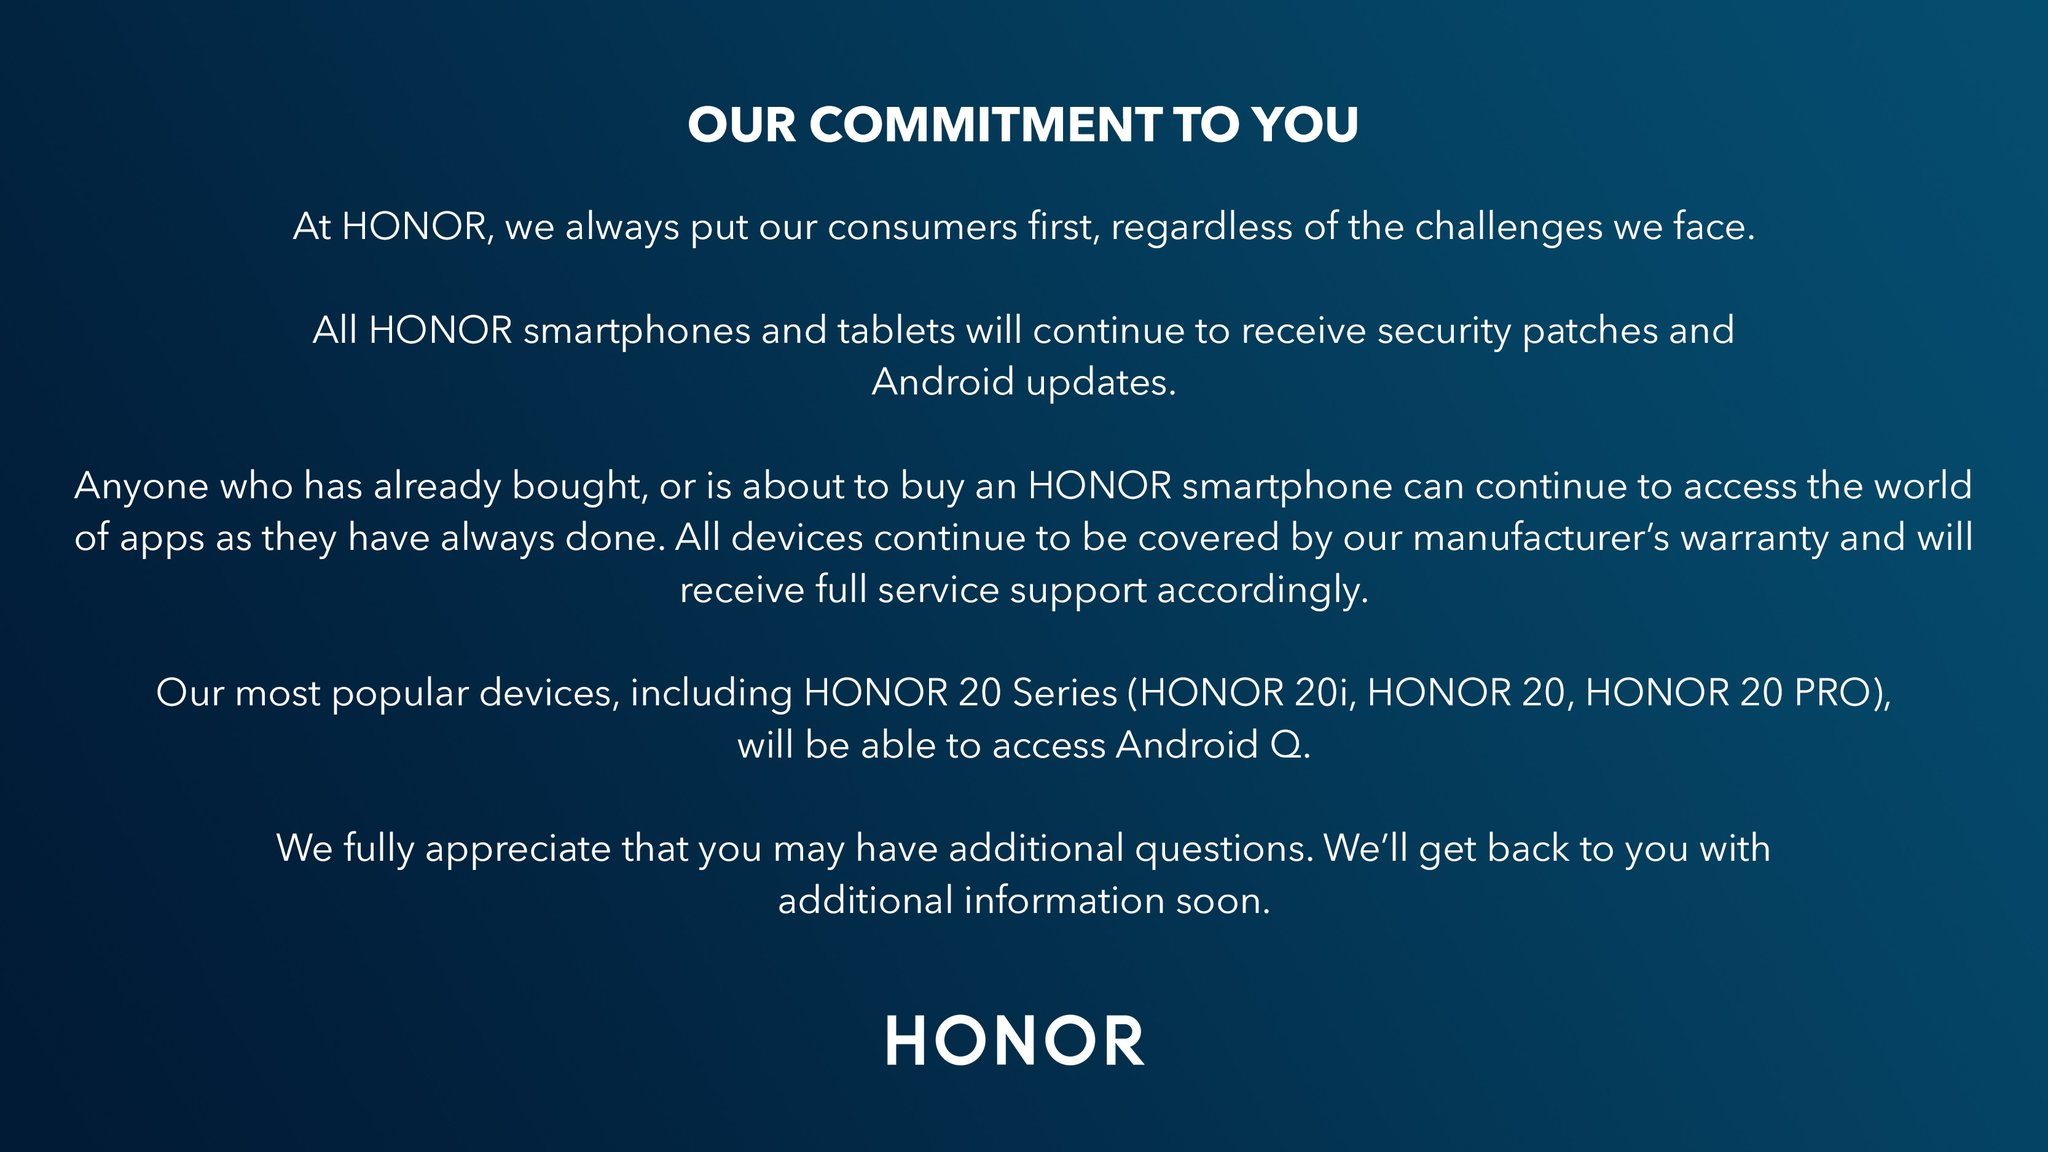 honor-20-android-update-techniblogic